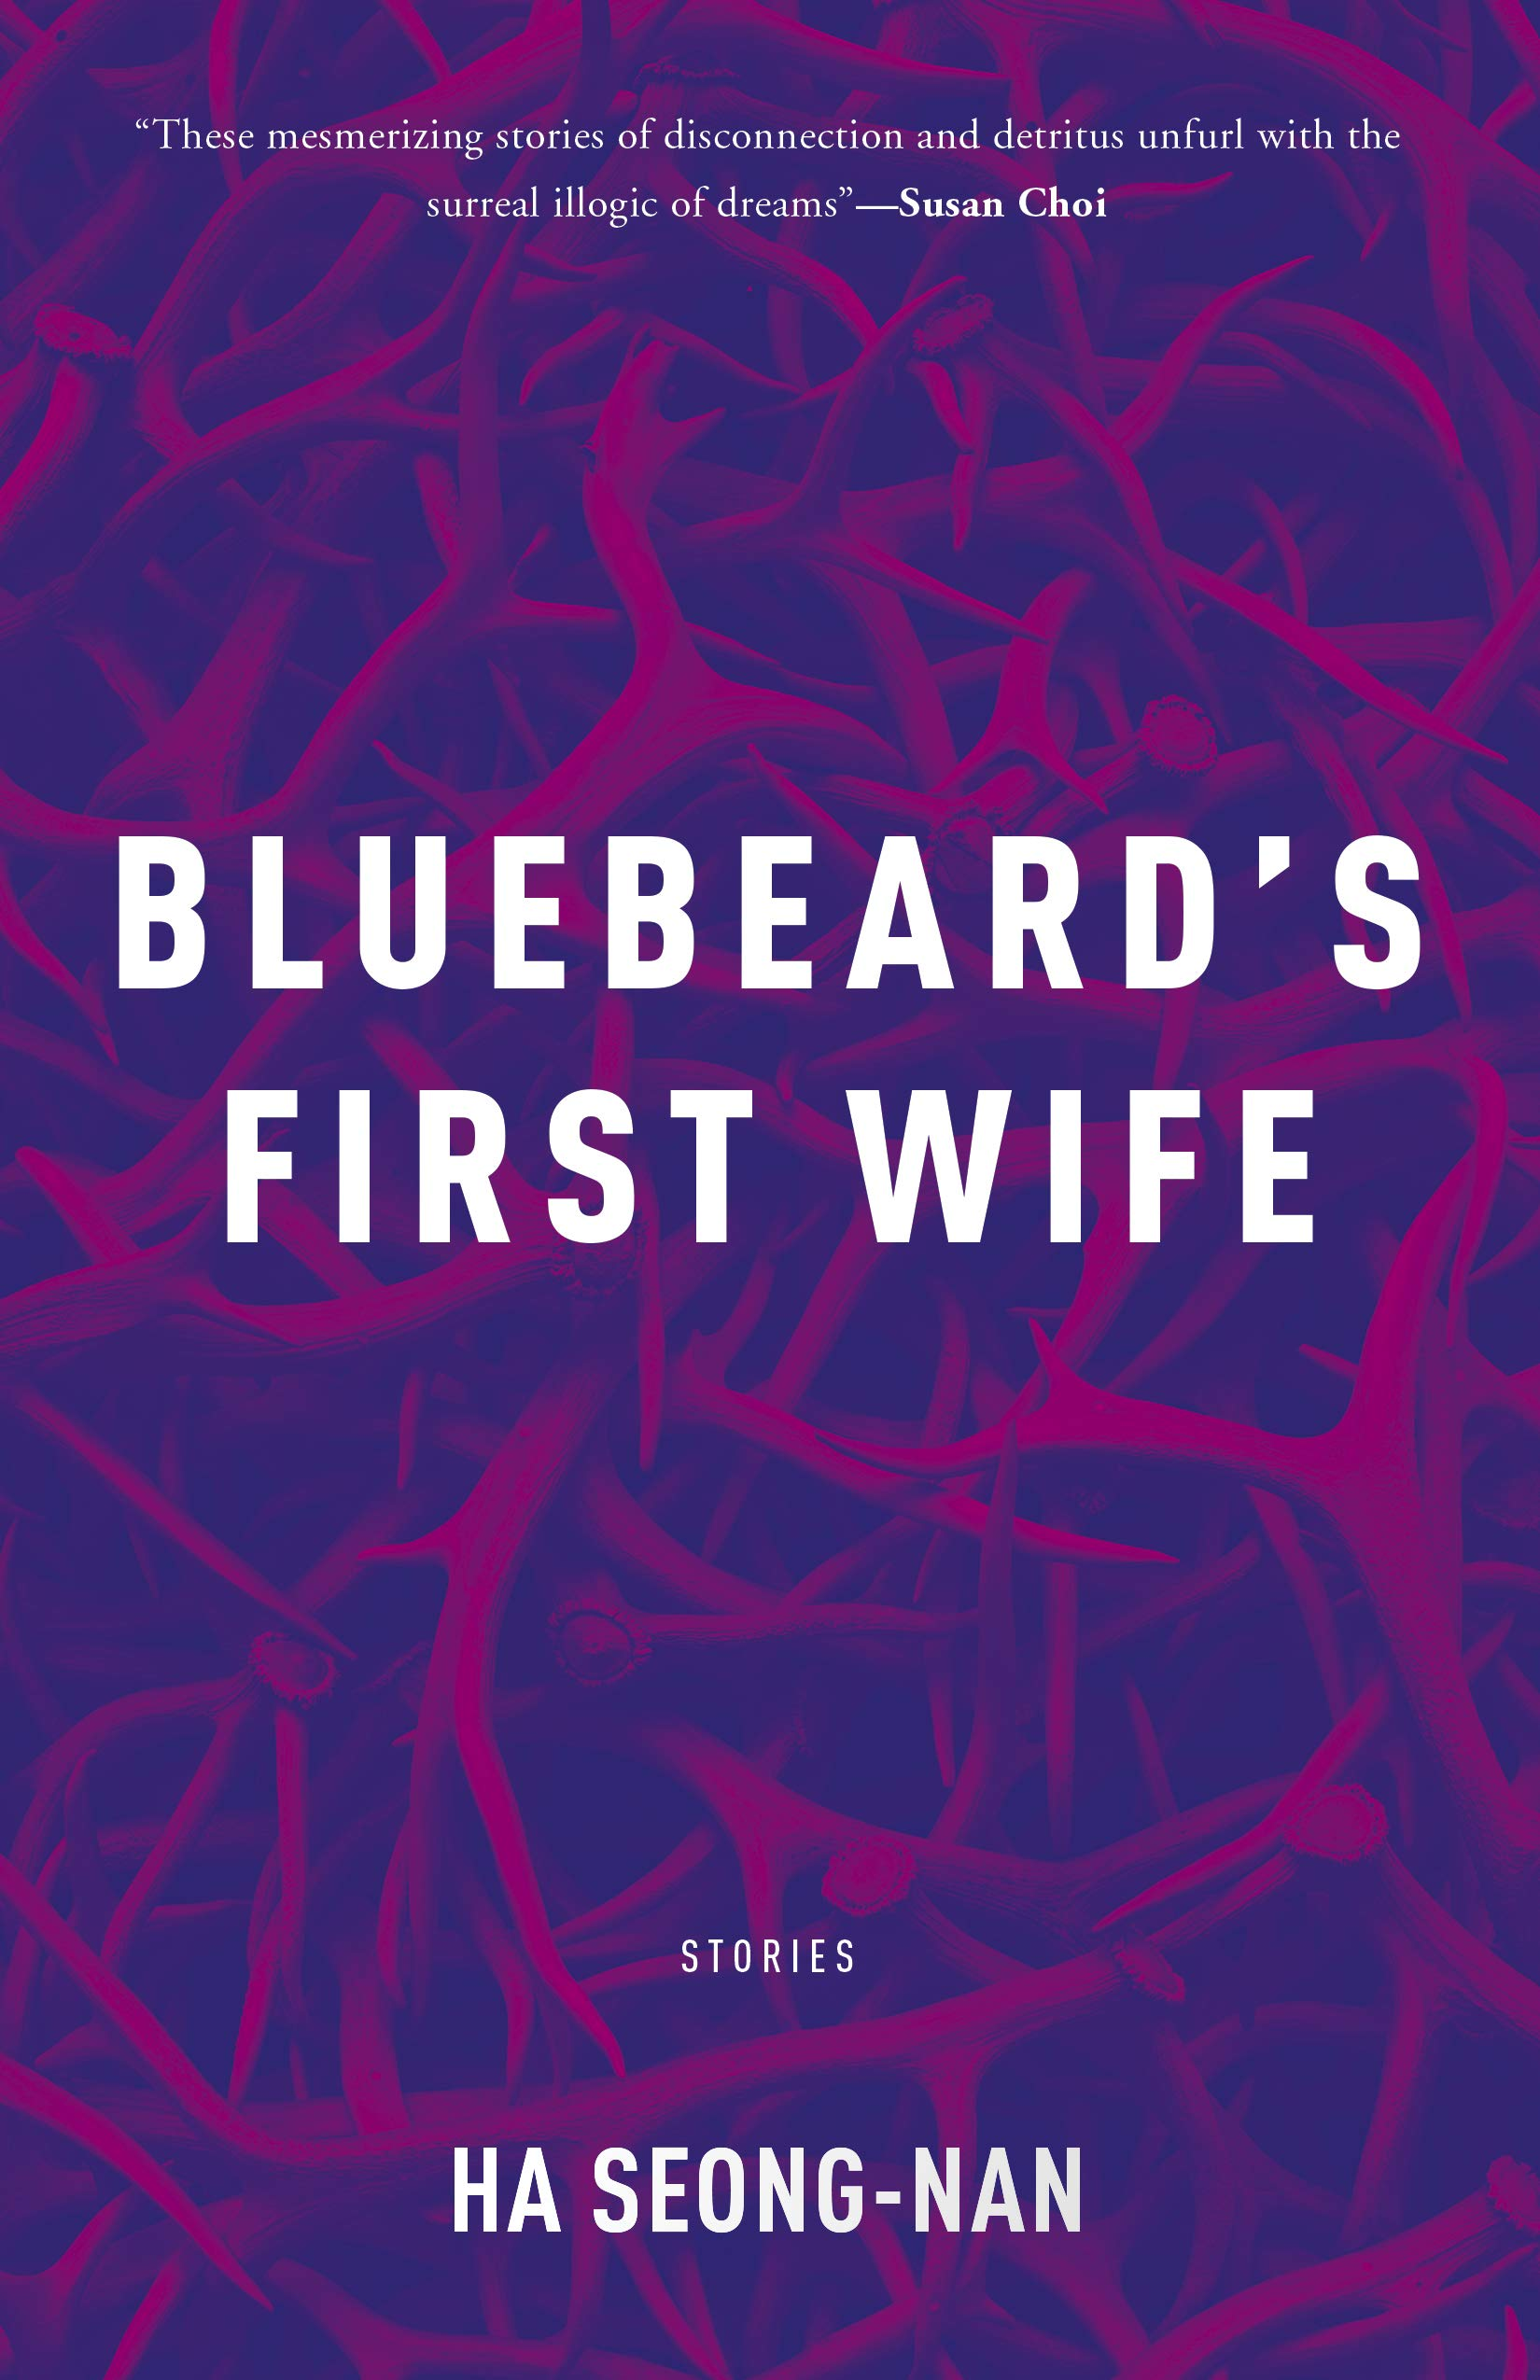 book cover for bluebeard's first wife